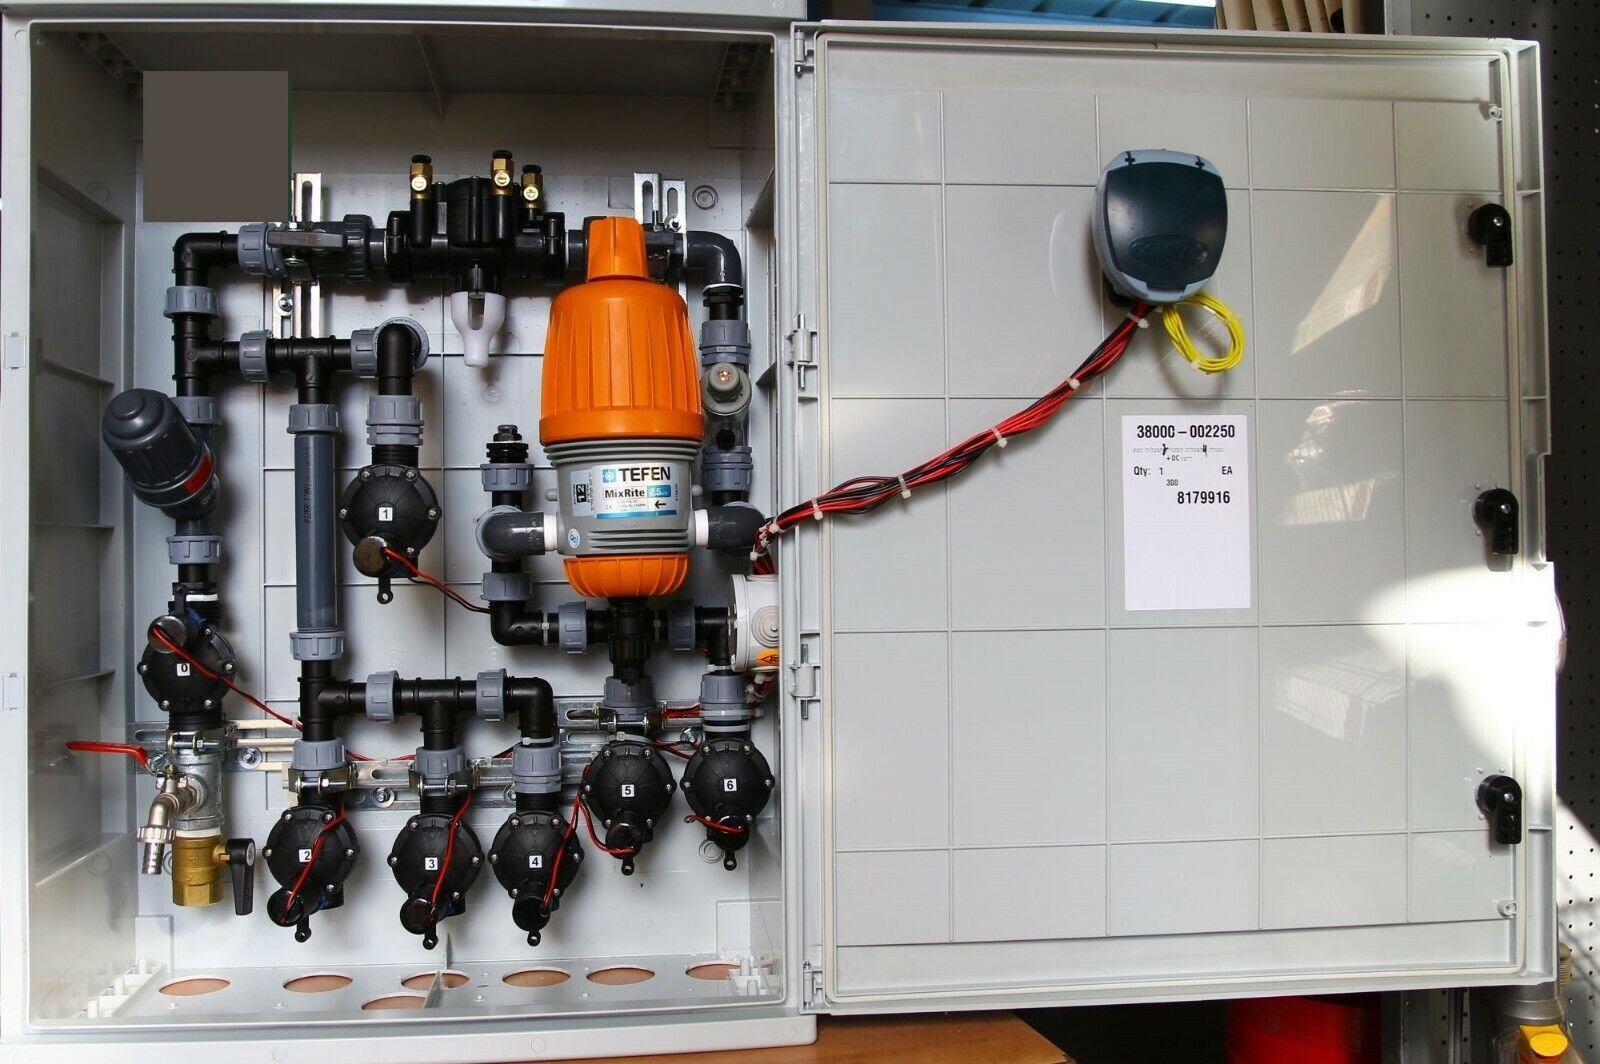 Full Built Drip Watering Irrigation System Outdoor Box Cabinet 6 Galcon DC Valve